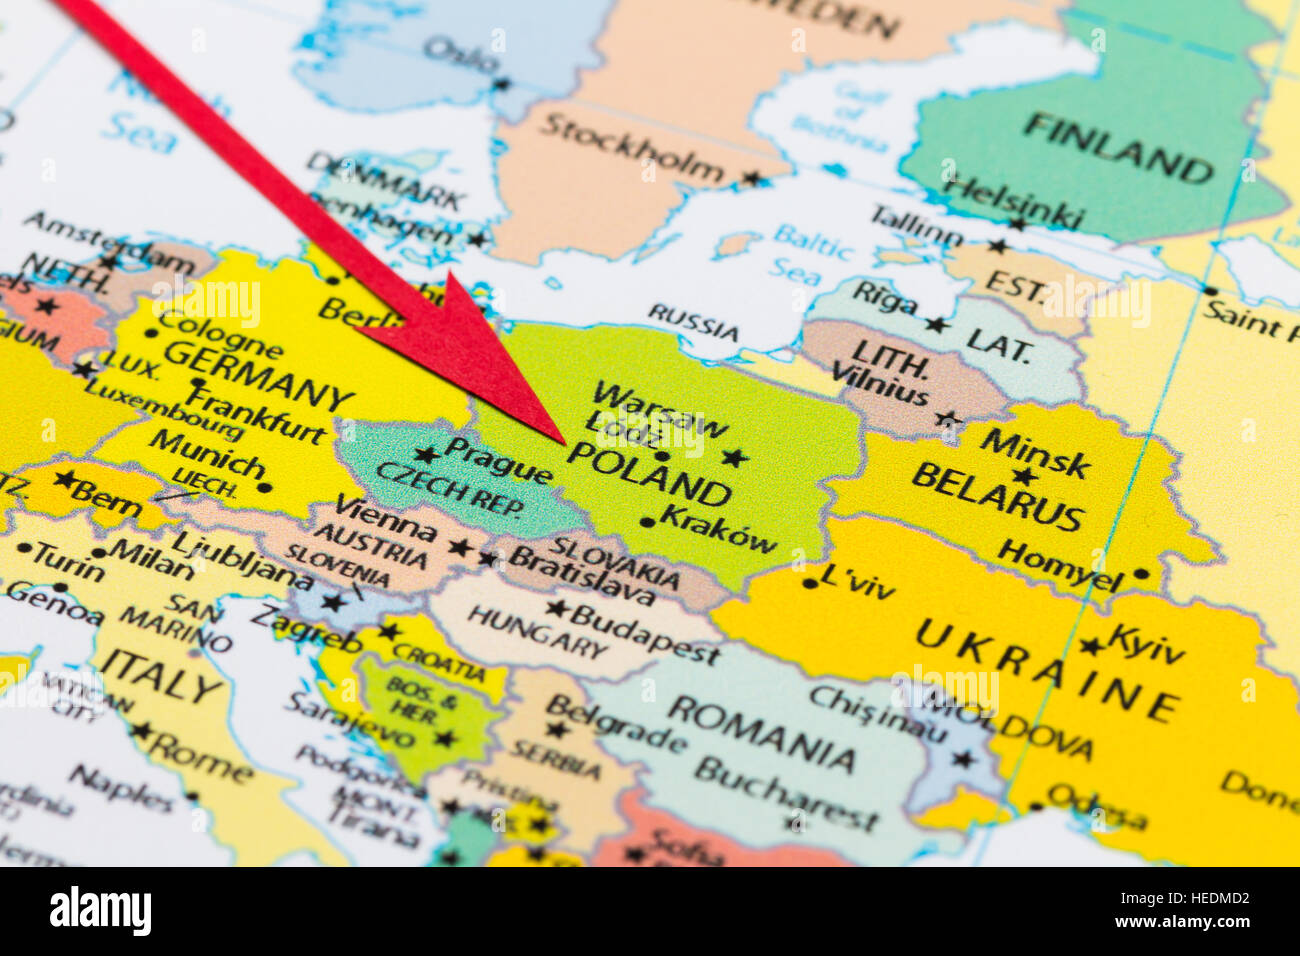 Red Arrow Pointing Poland On The Map Of Europe Continent – Map of Europe Continent